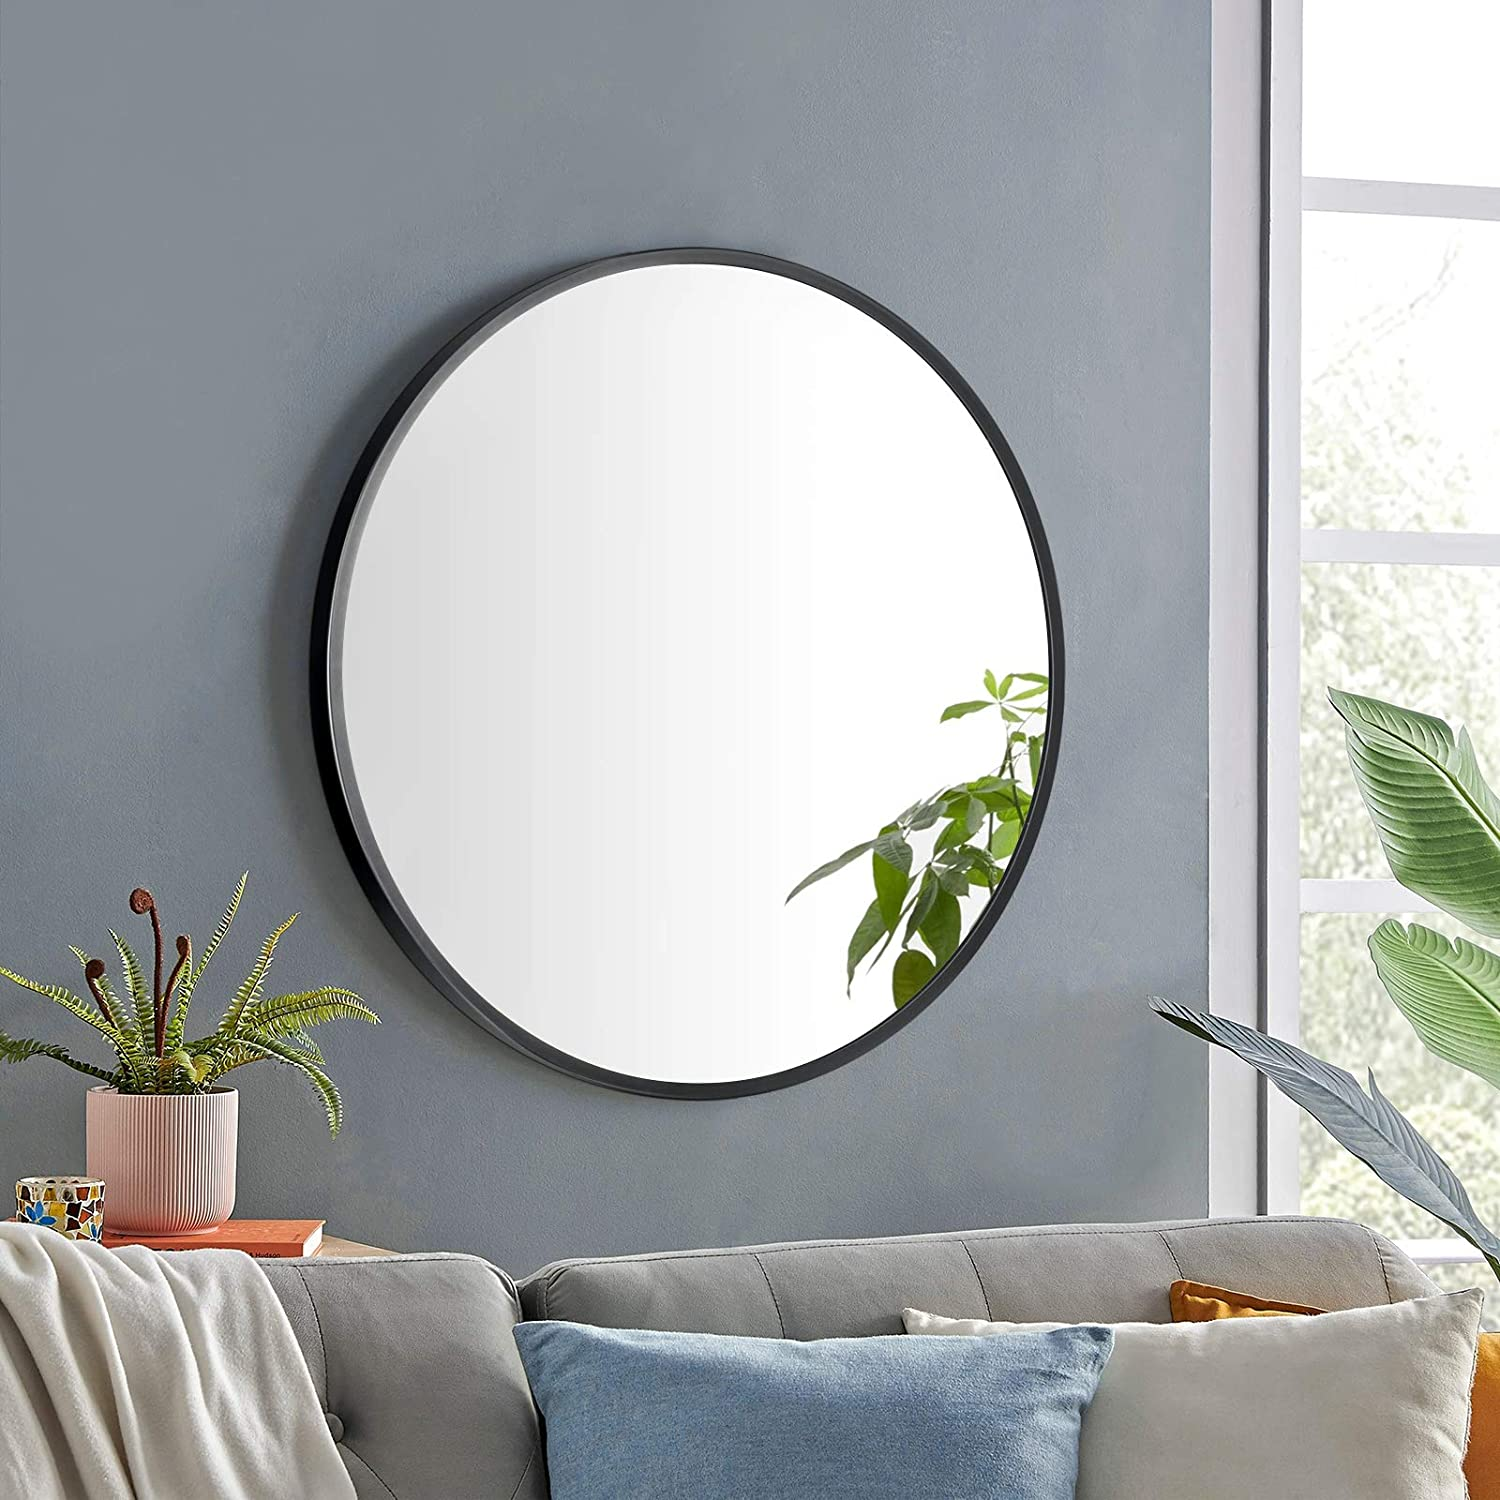 Albrillo 24 Inch Round Mirror, Wall Mounted Mirror Black Circle Mirror with Metal Frame for Bathroom, Vanity, Entryway, Living Room, Wall Decor